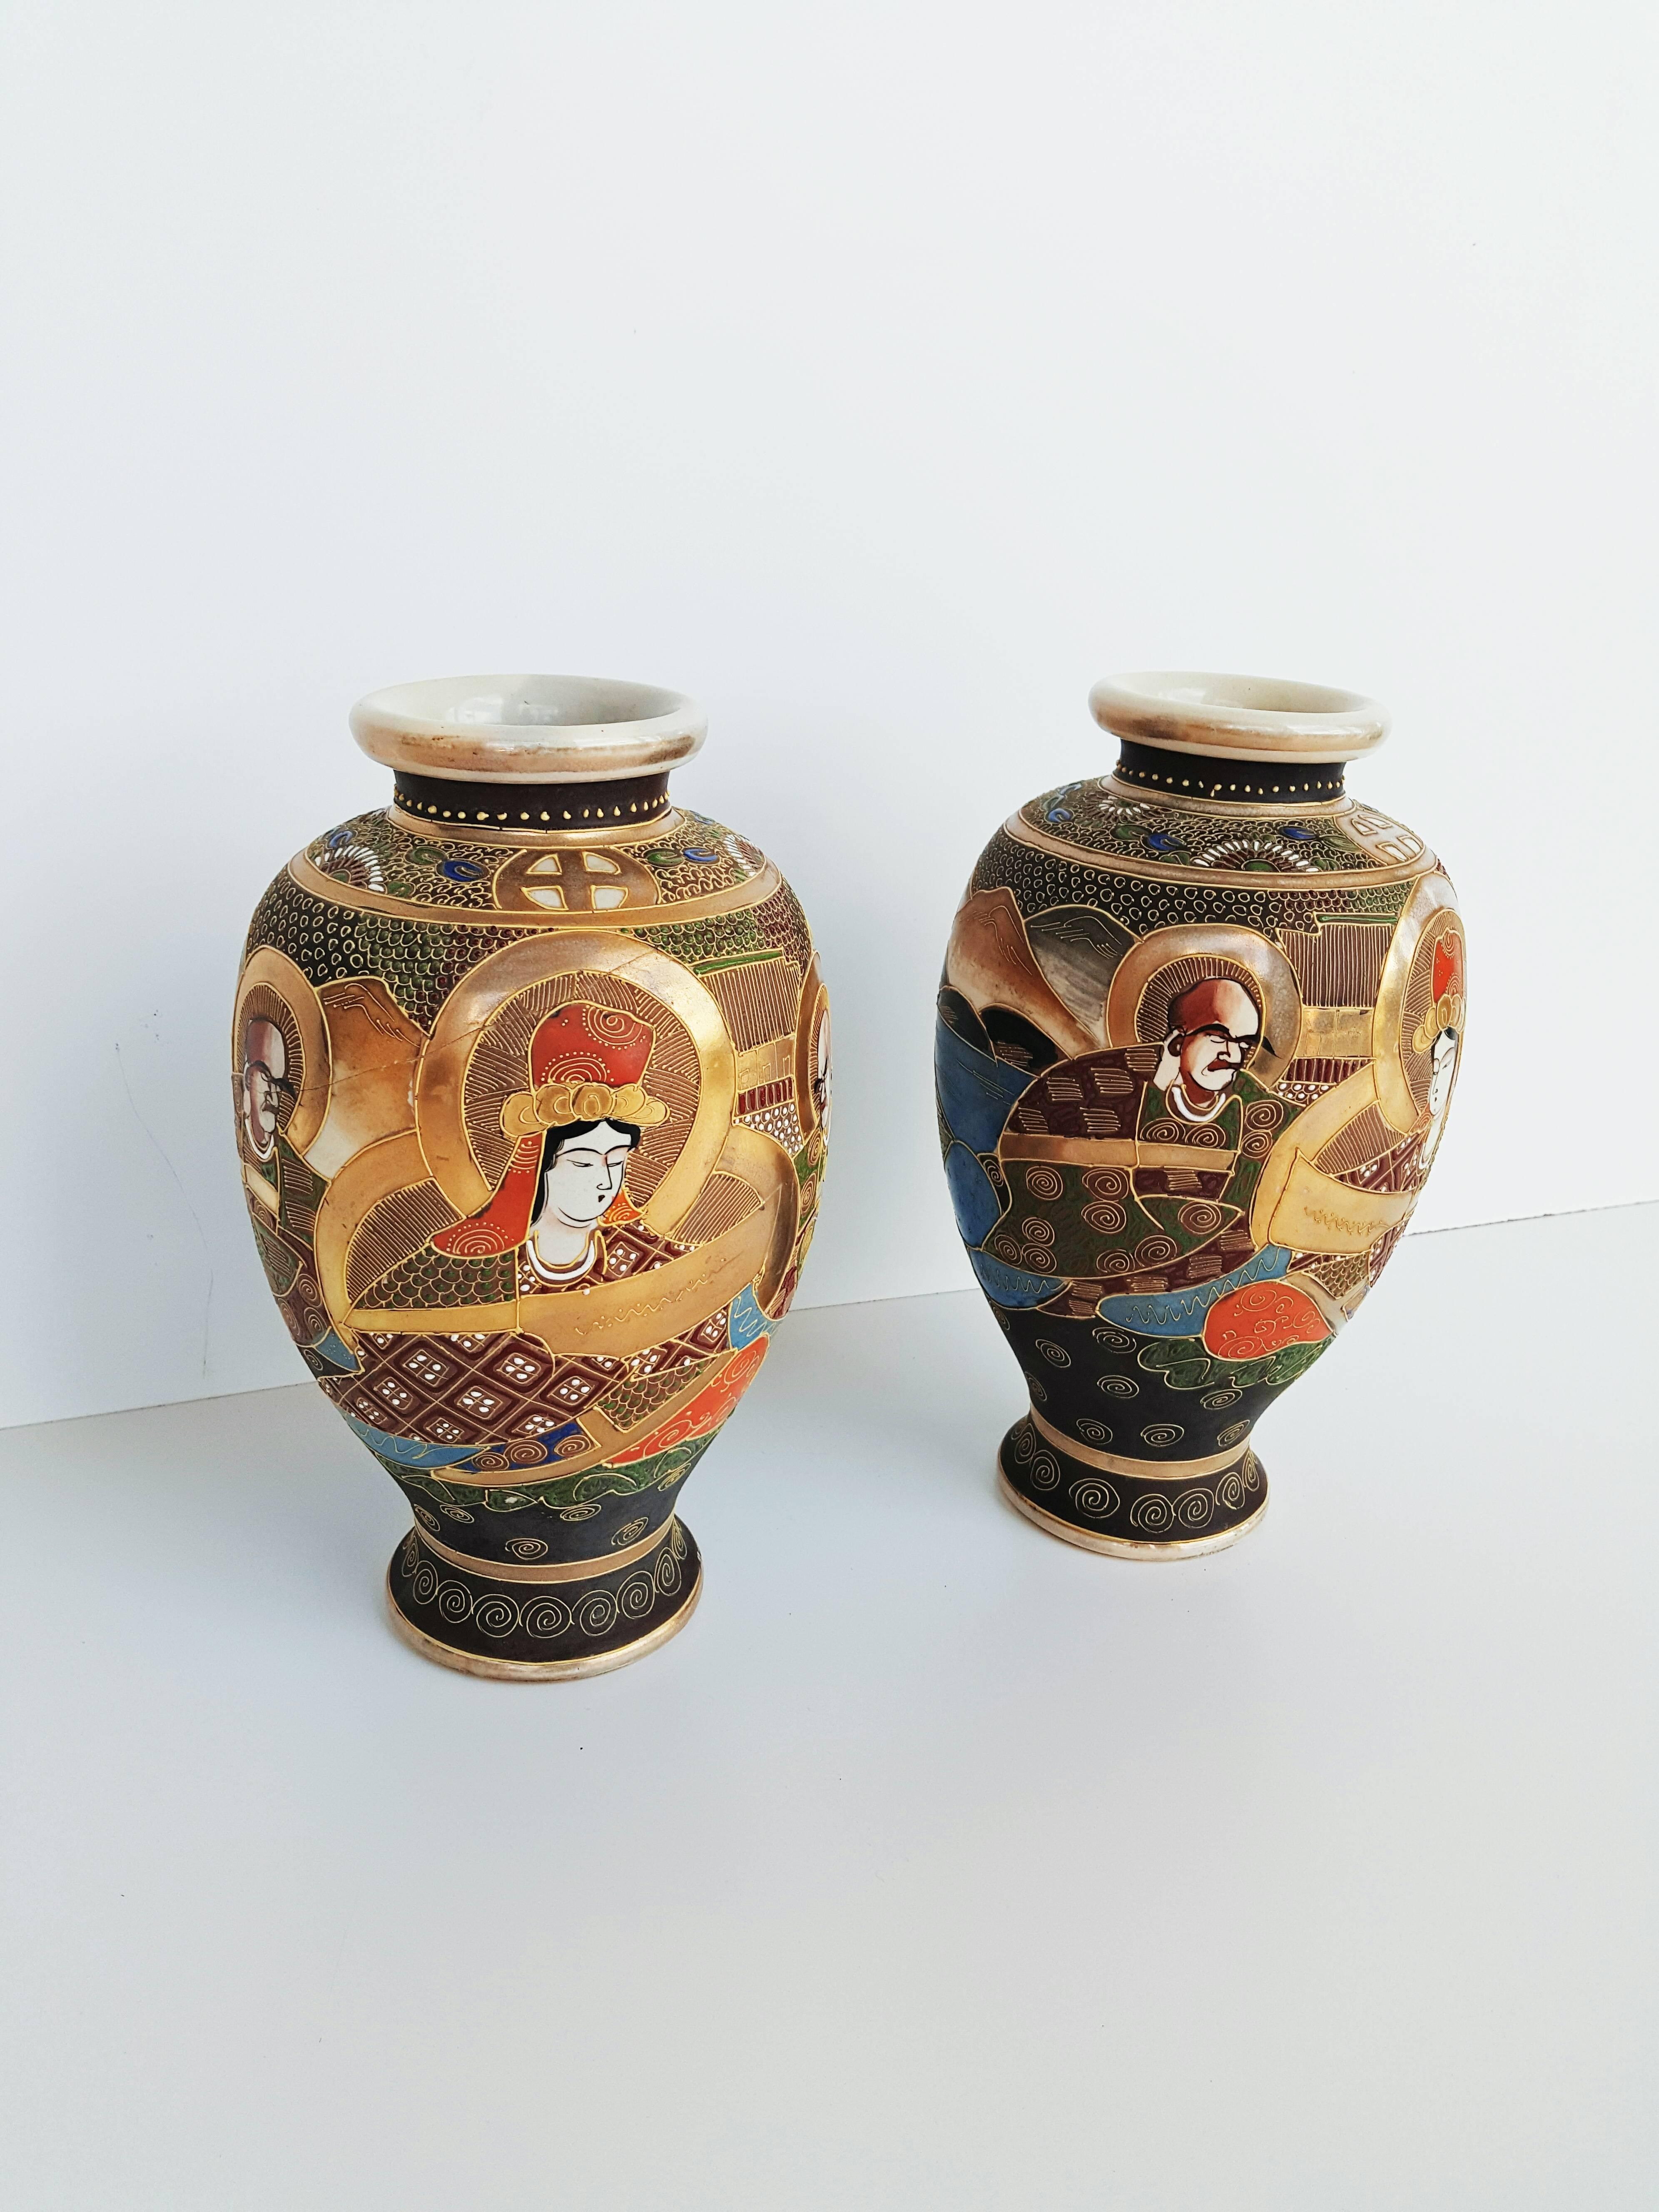 antique japanese metal vases of early 20th century pair of japanese satsuma vases in painted ceramic for early 20th century pair of japanese satsuma vases in painted ceramic for sale at 1stdibs